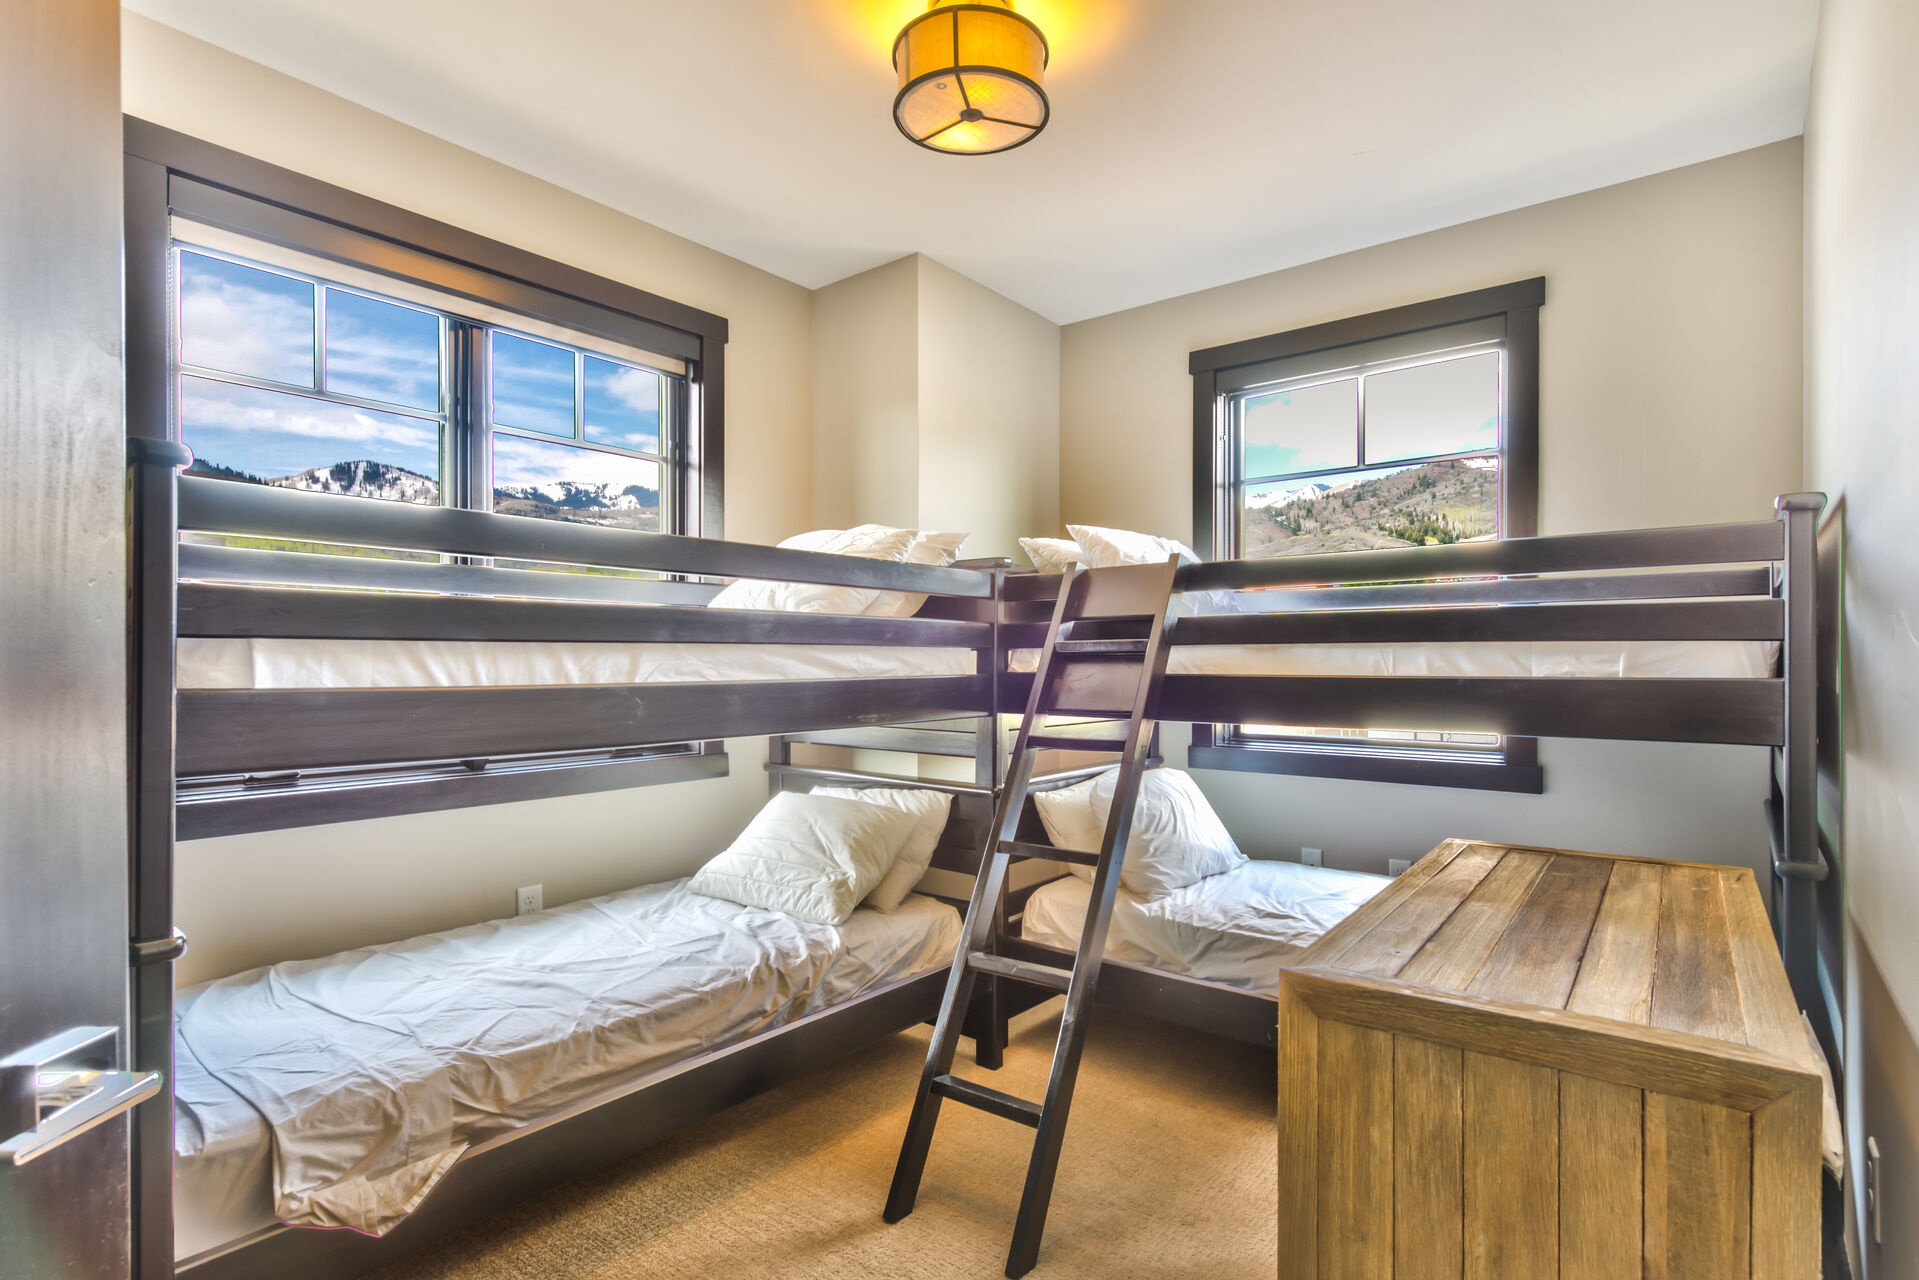 Bedroom 3 is a Bunk Room on the Upper Level with 4 Twin Beds and a Shared Full Bathroom